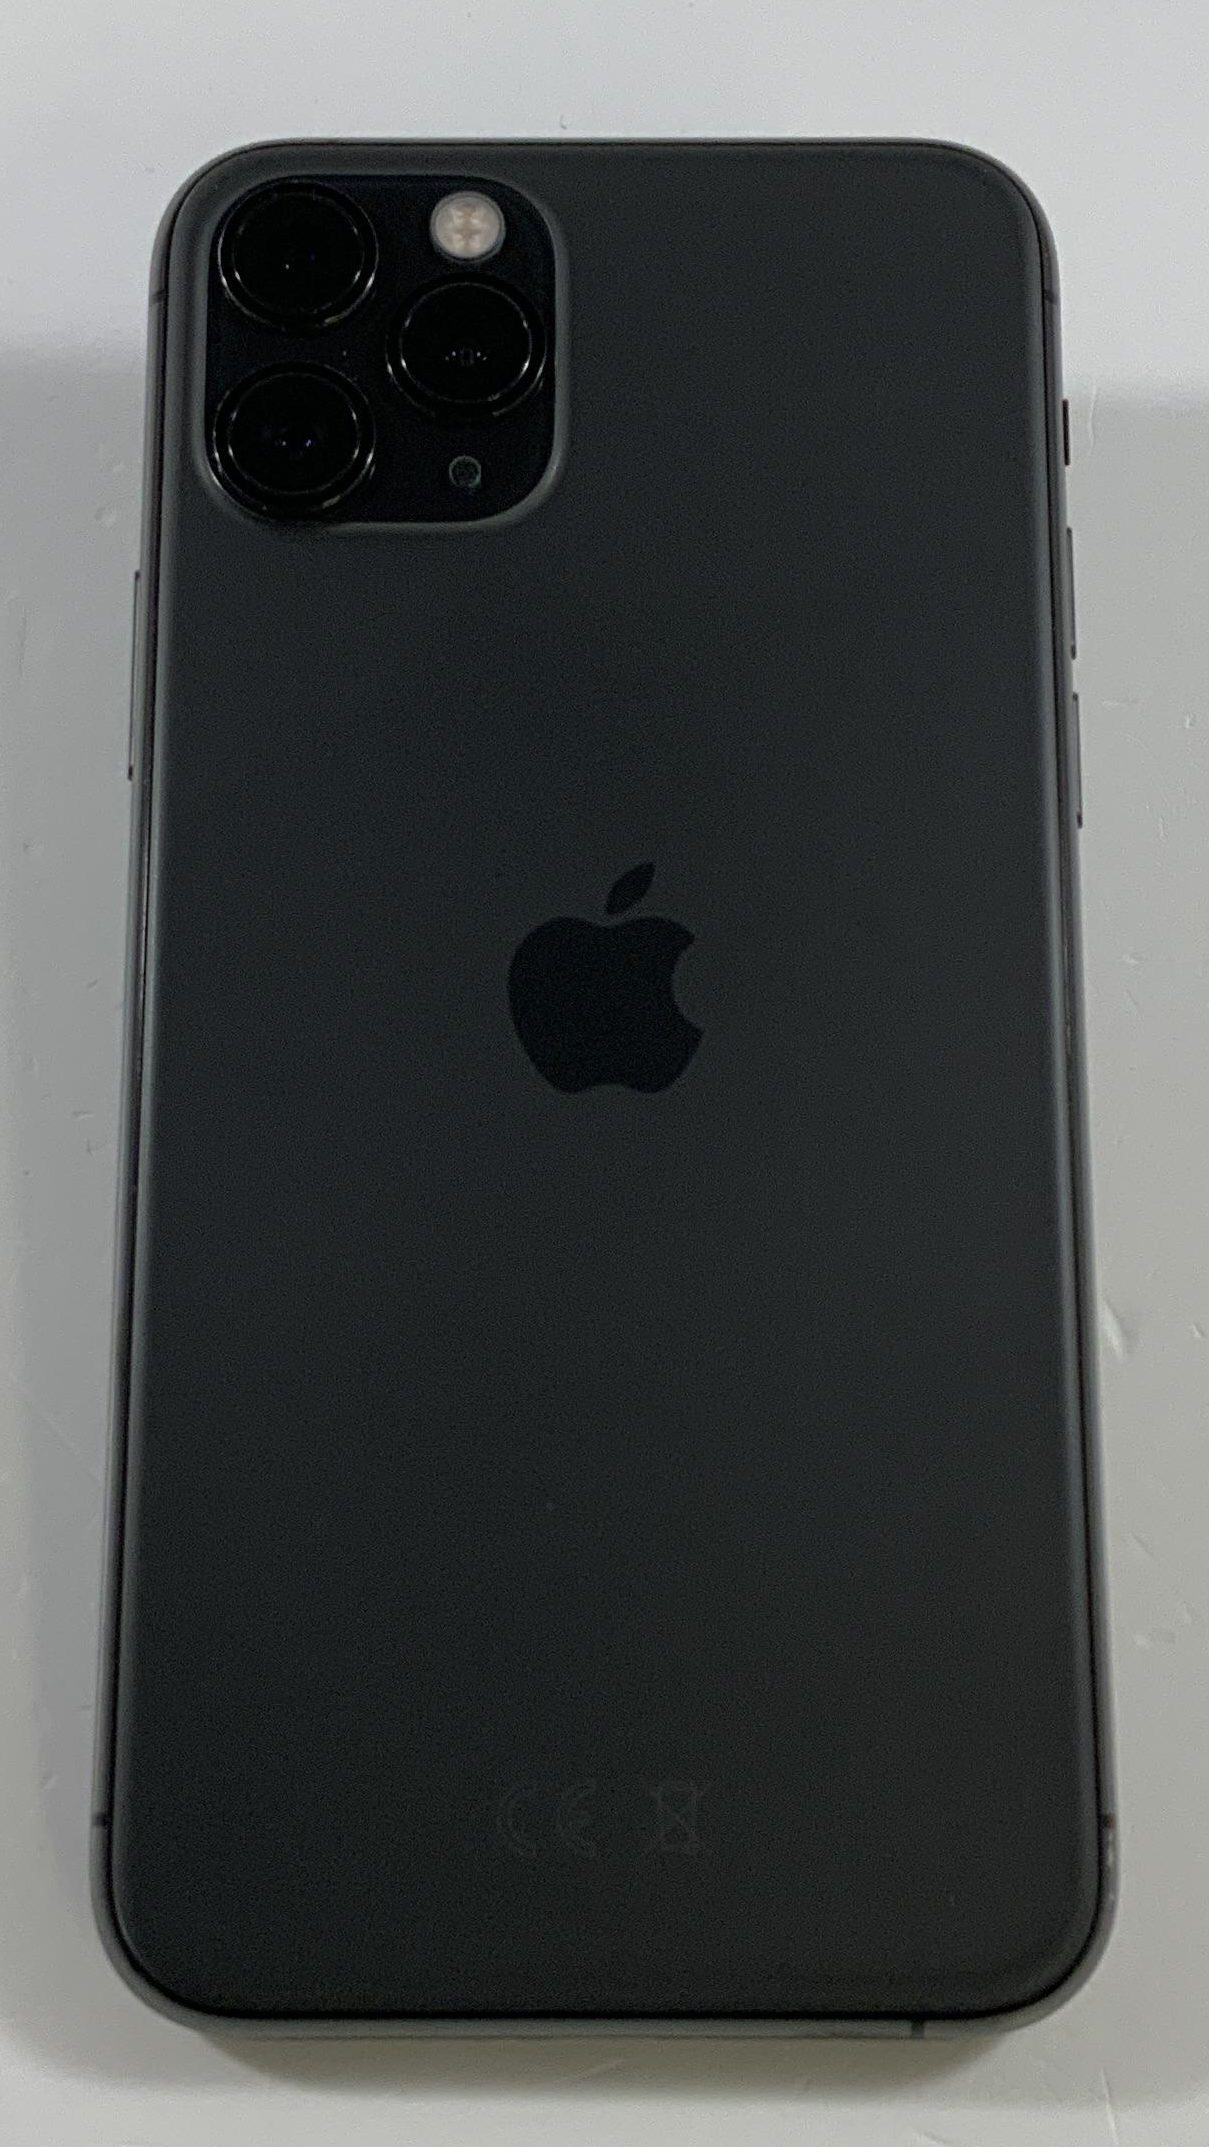 iPhone 11 Pro 64GB, 64GB, Space Gray, obraz 2